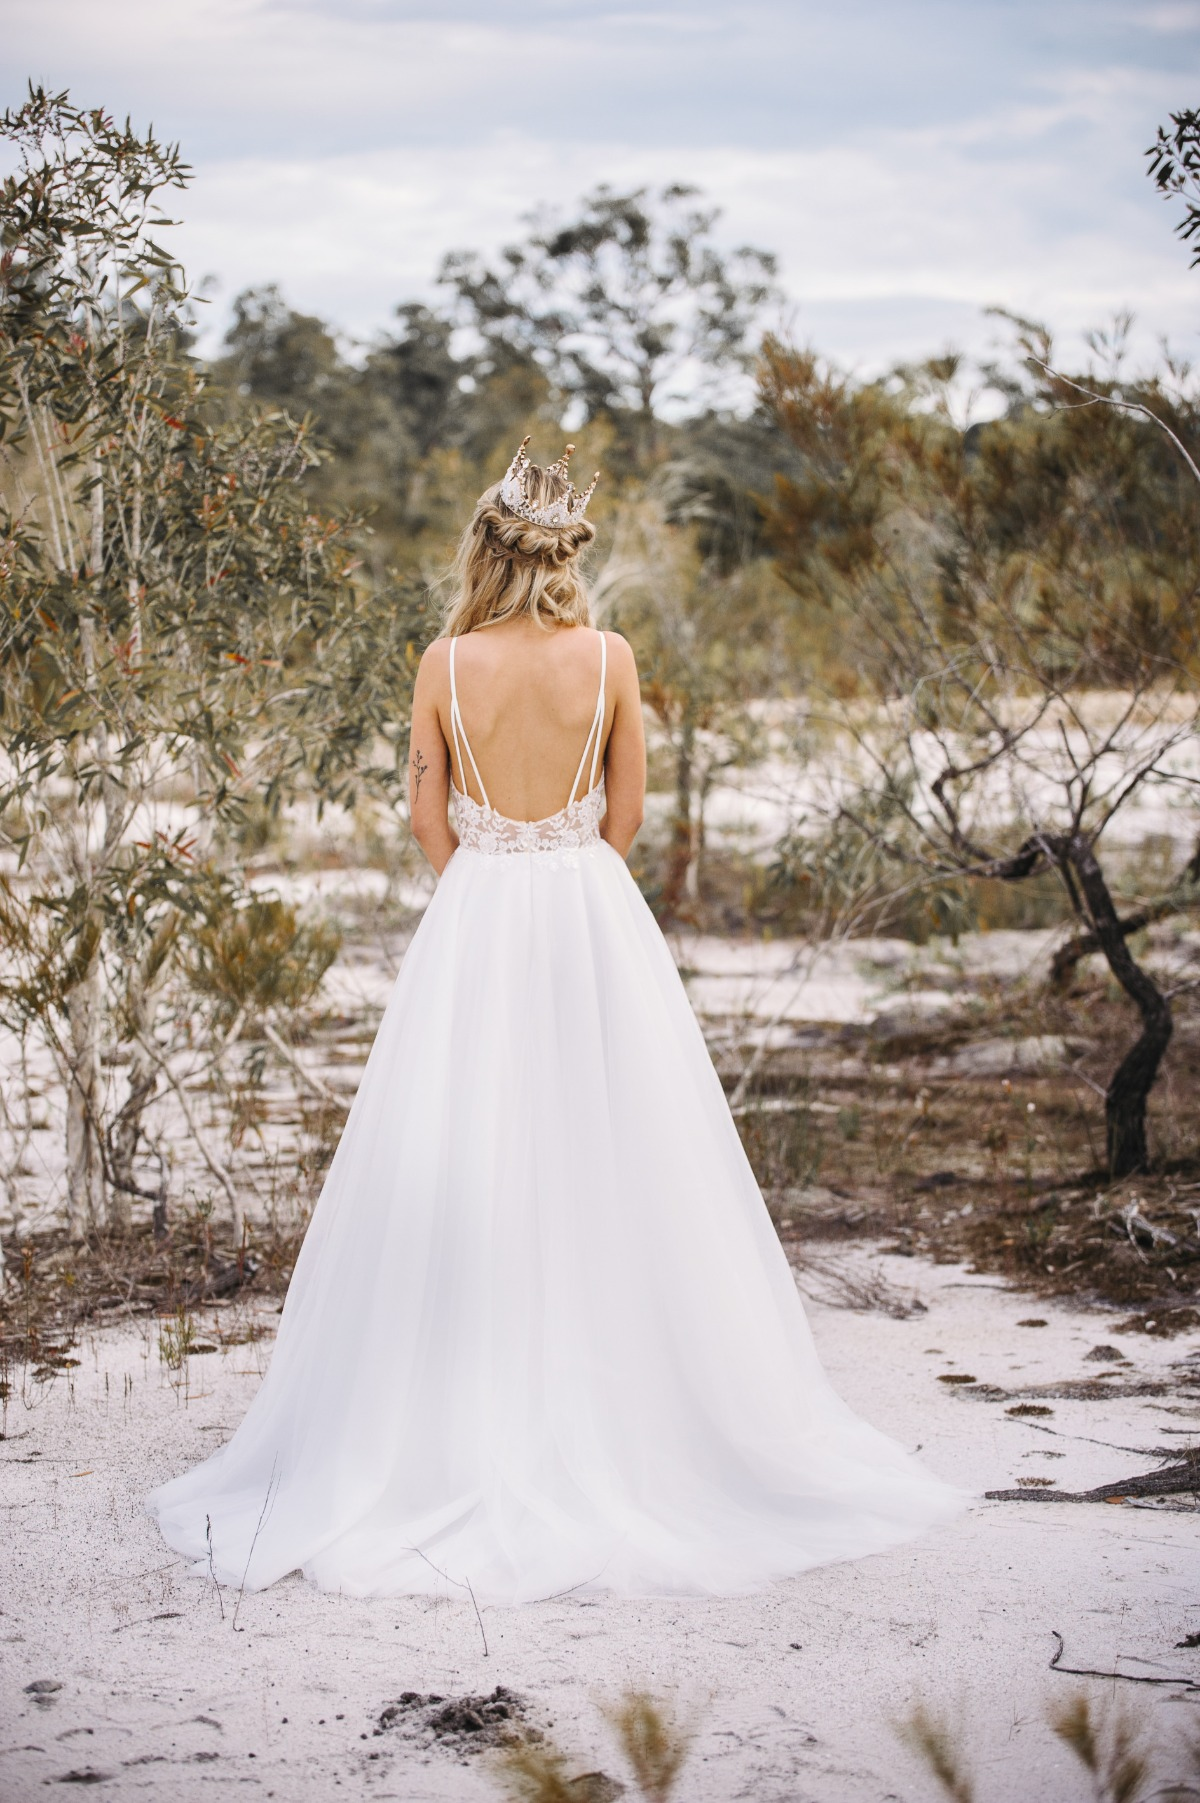 Elizabeth gown from Goddess by Nature